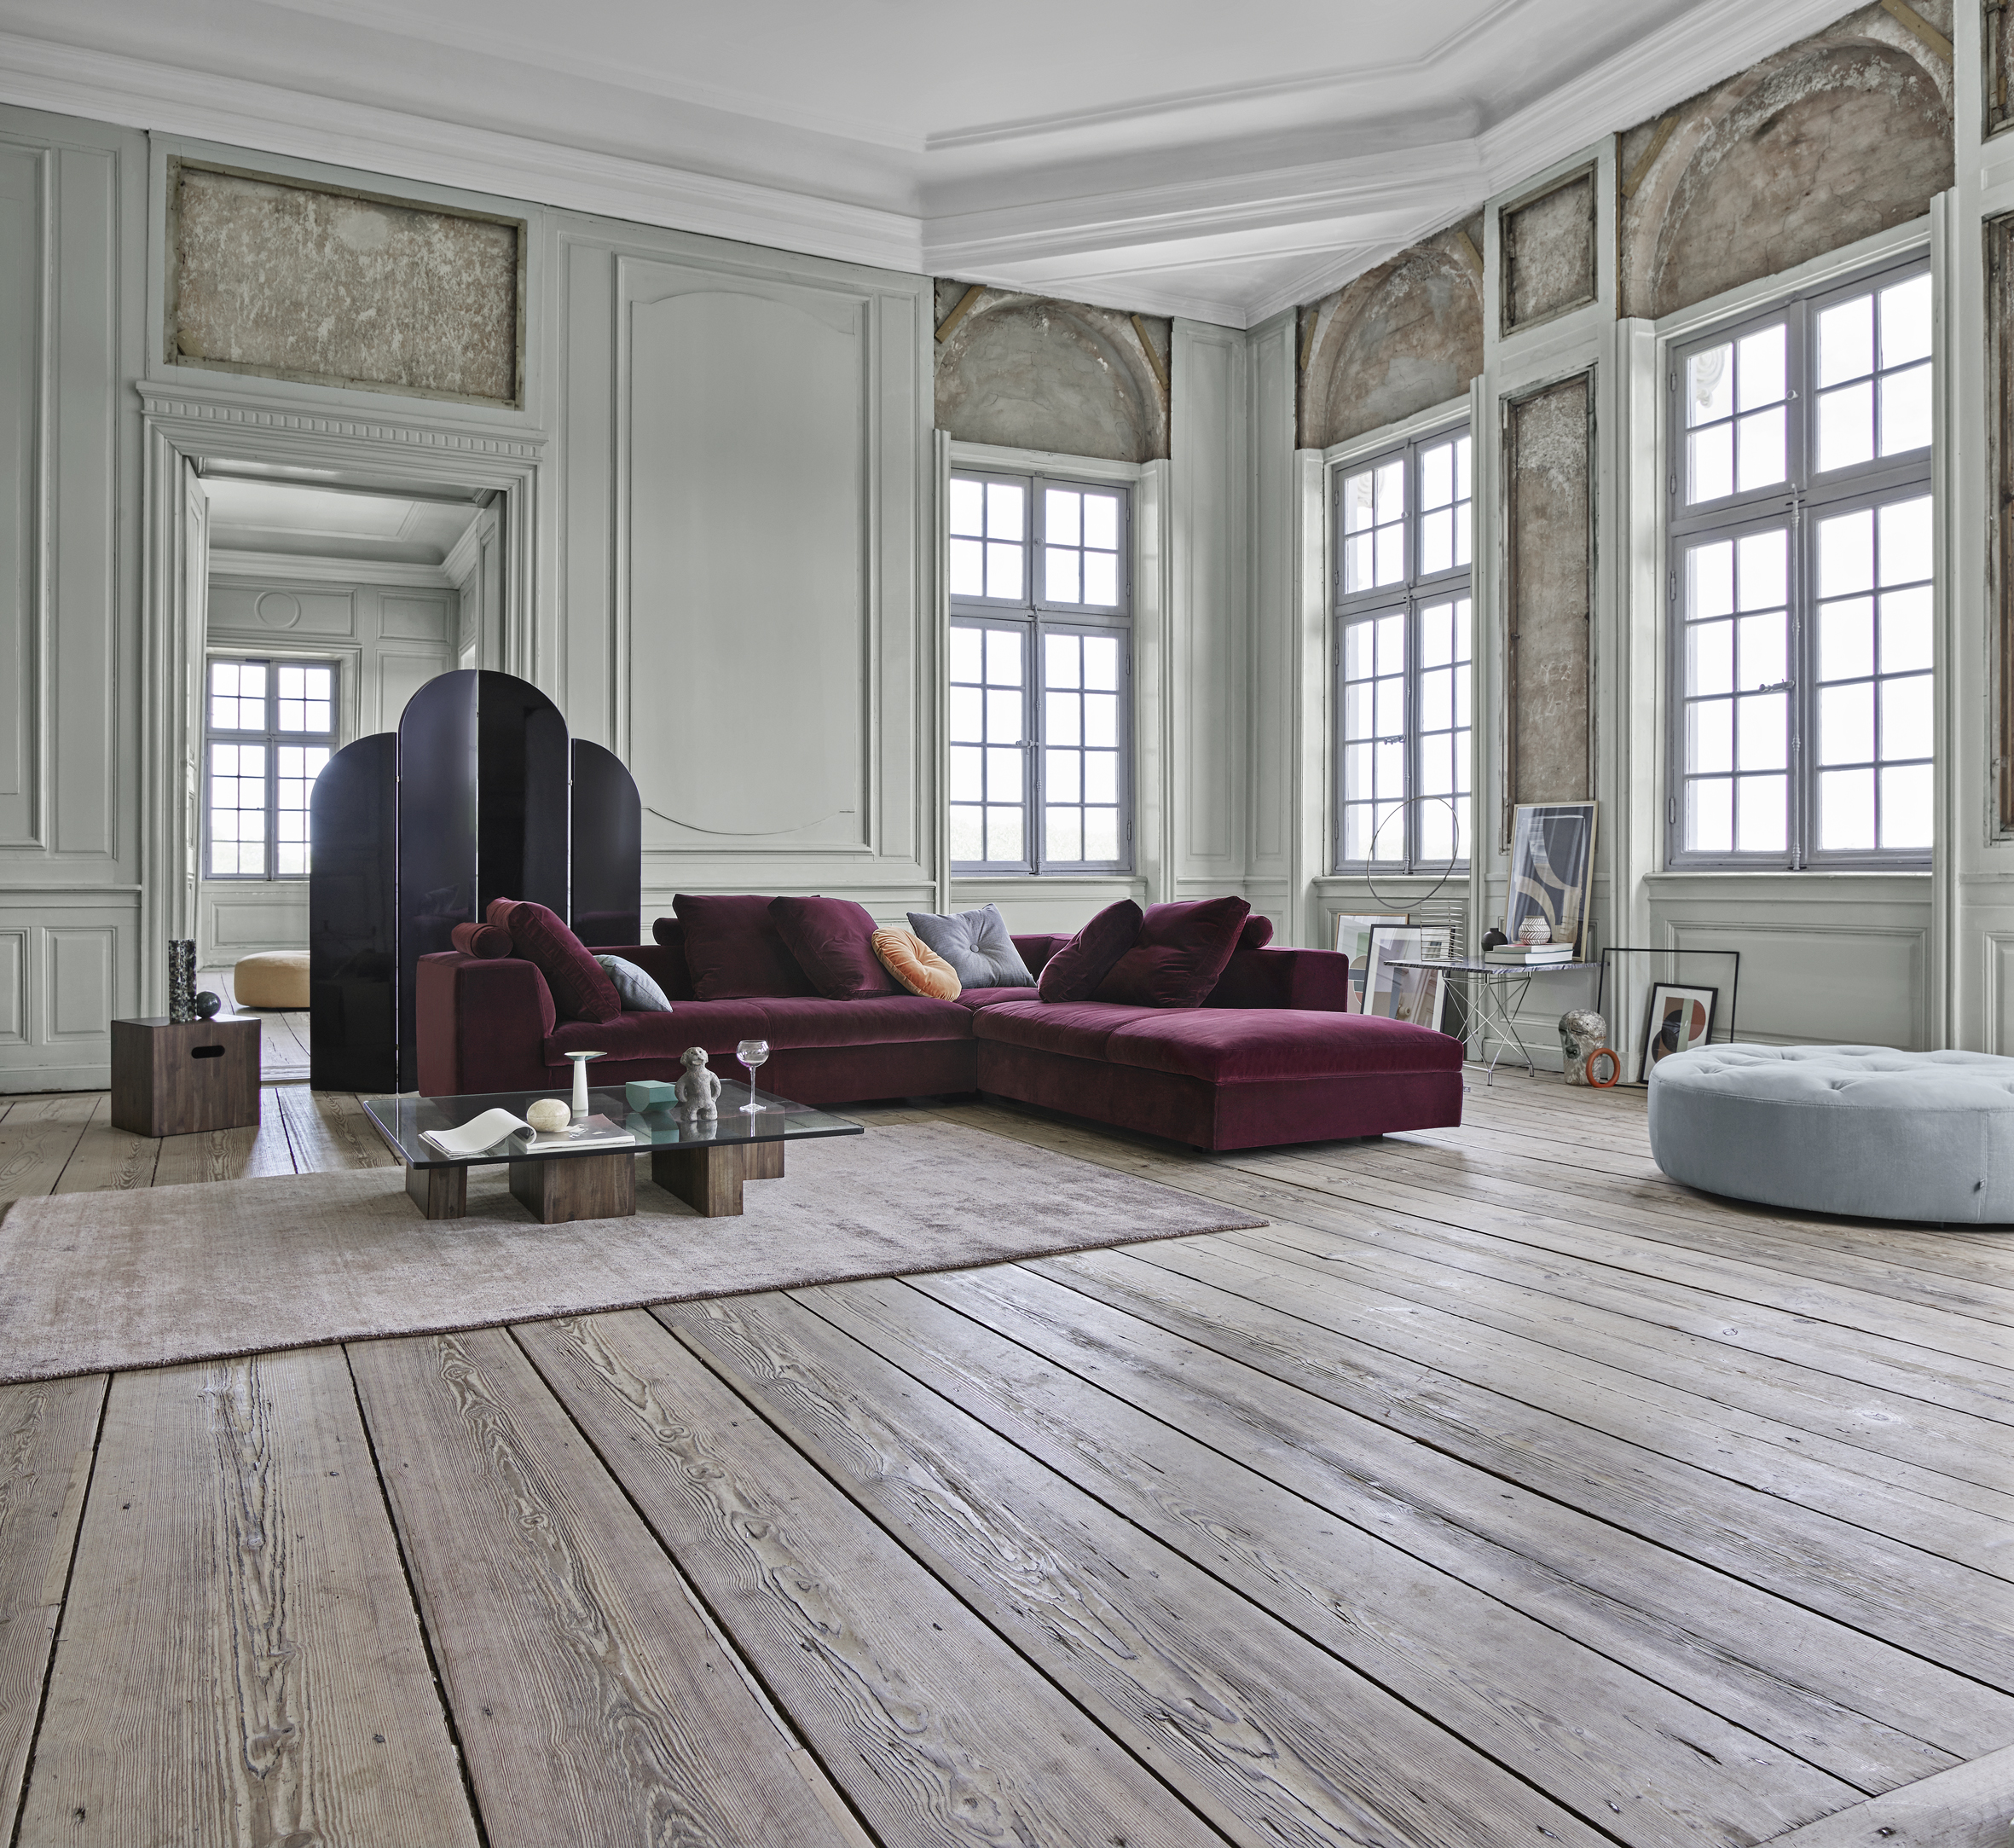 New Sofa From Eilersen Is A Chameleon